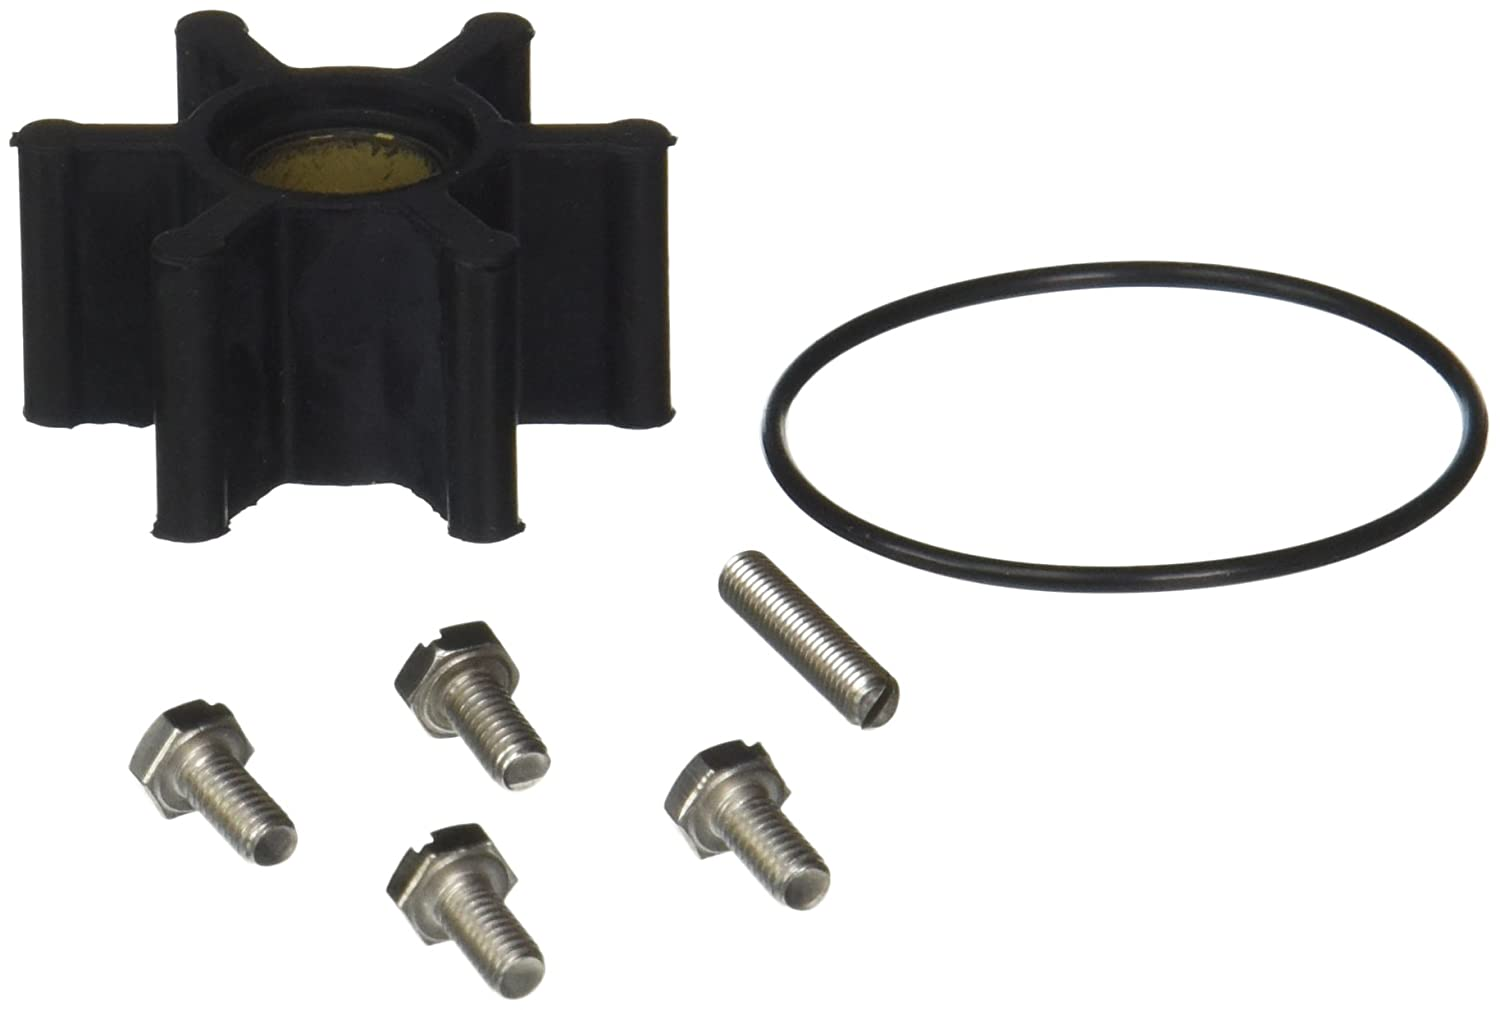 617LNQUmYlL._SL1500_ amazon com sierra 23 3306 marine generator parts, impeller kit  at crackthecode.co